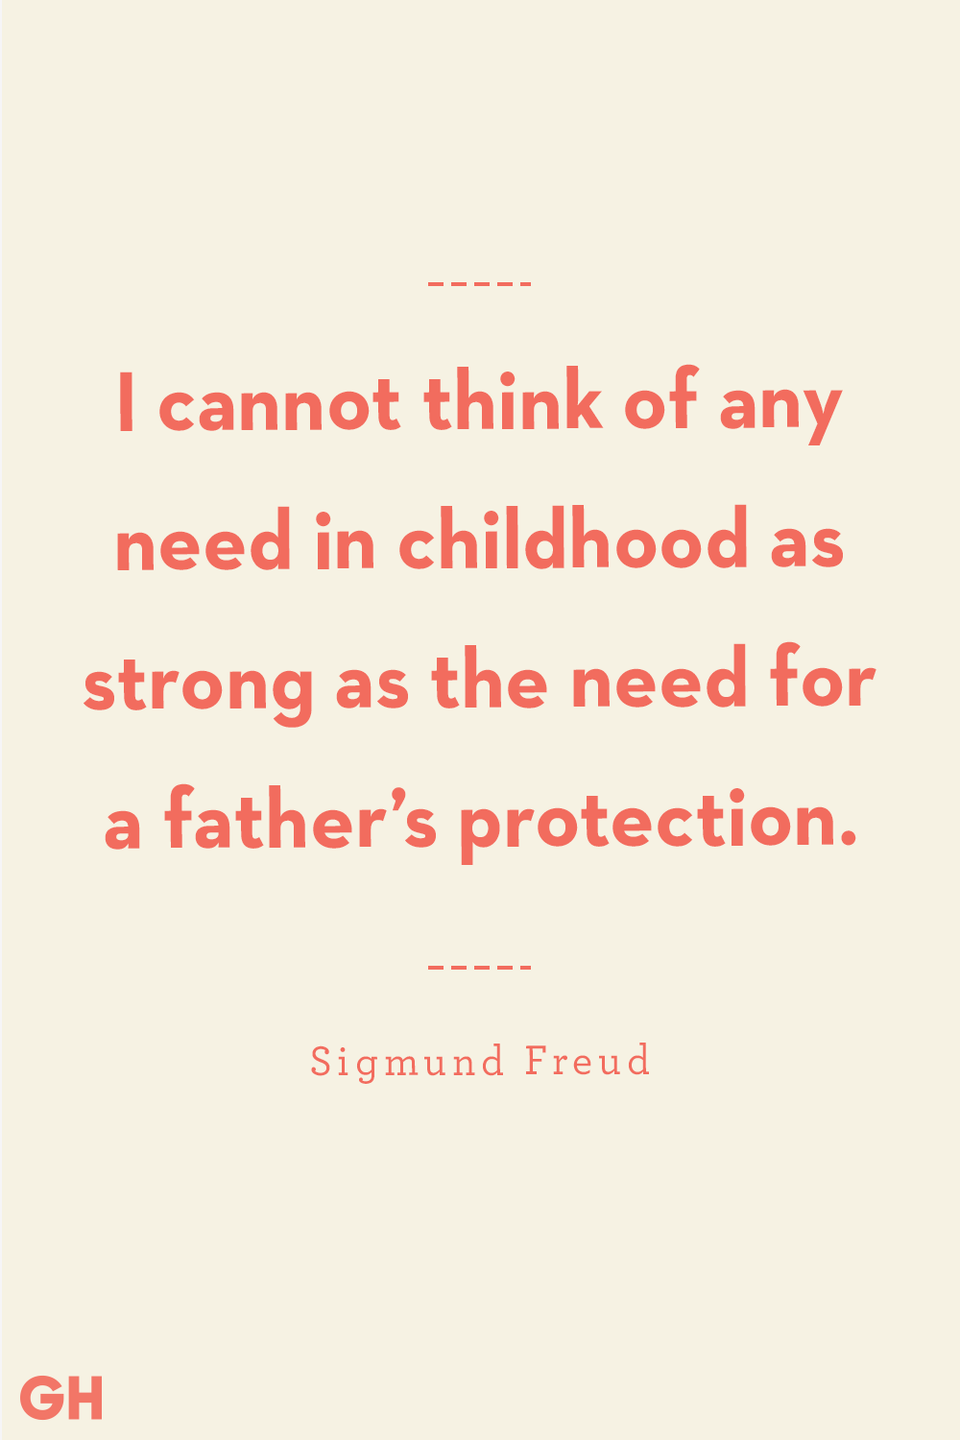 <p>I cannot think of any need in childhood as strong as the need for a father's protection.</p>